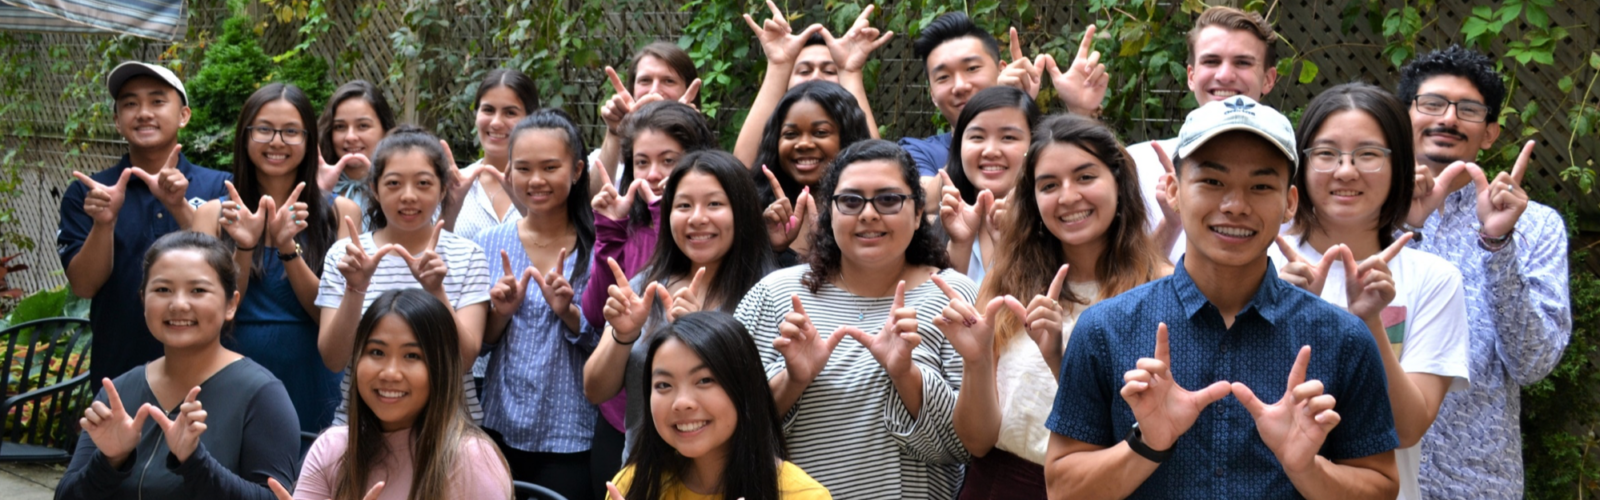 22 college student interns are grouped smiling and making W signs with their hands